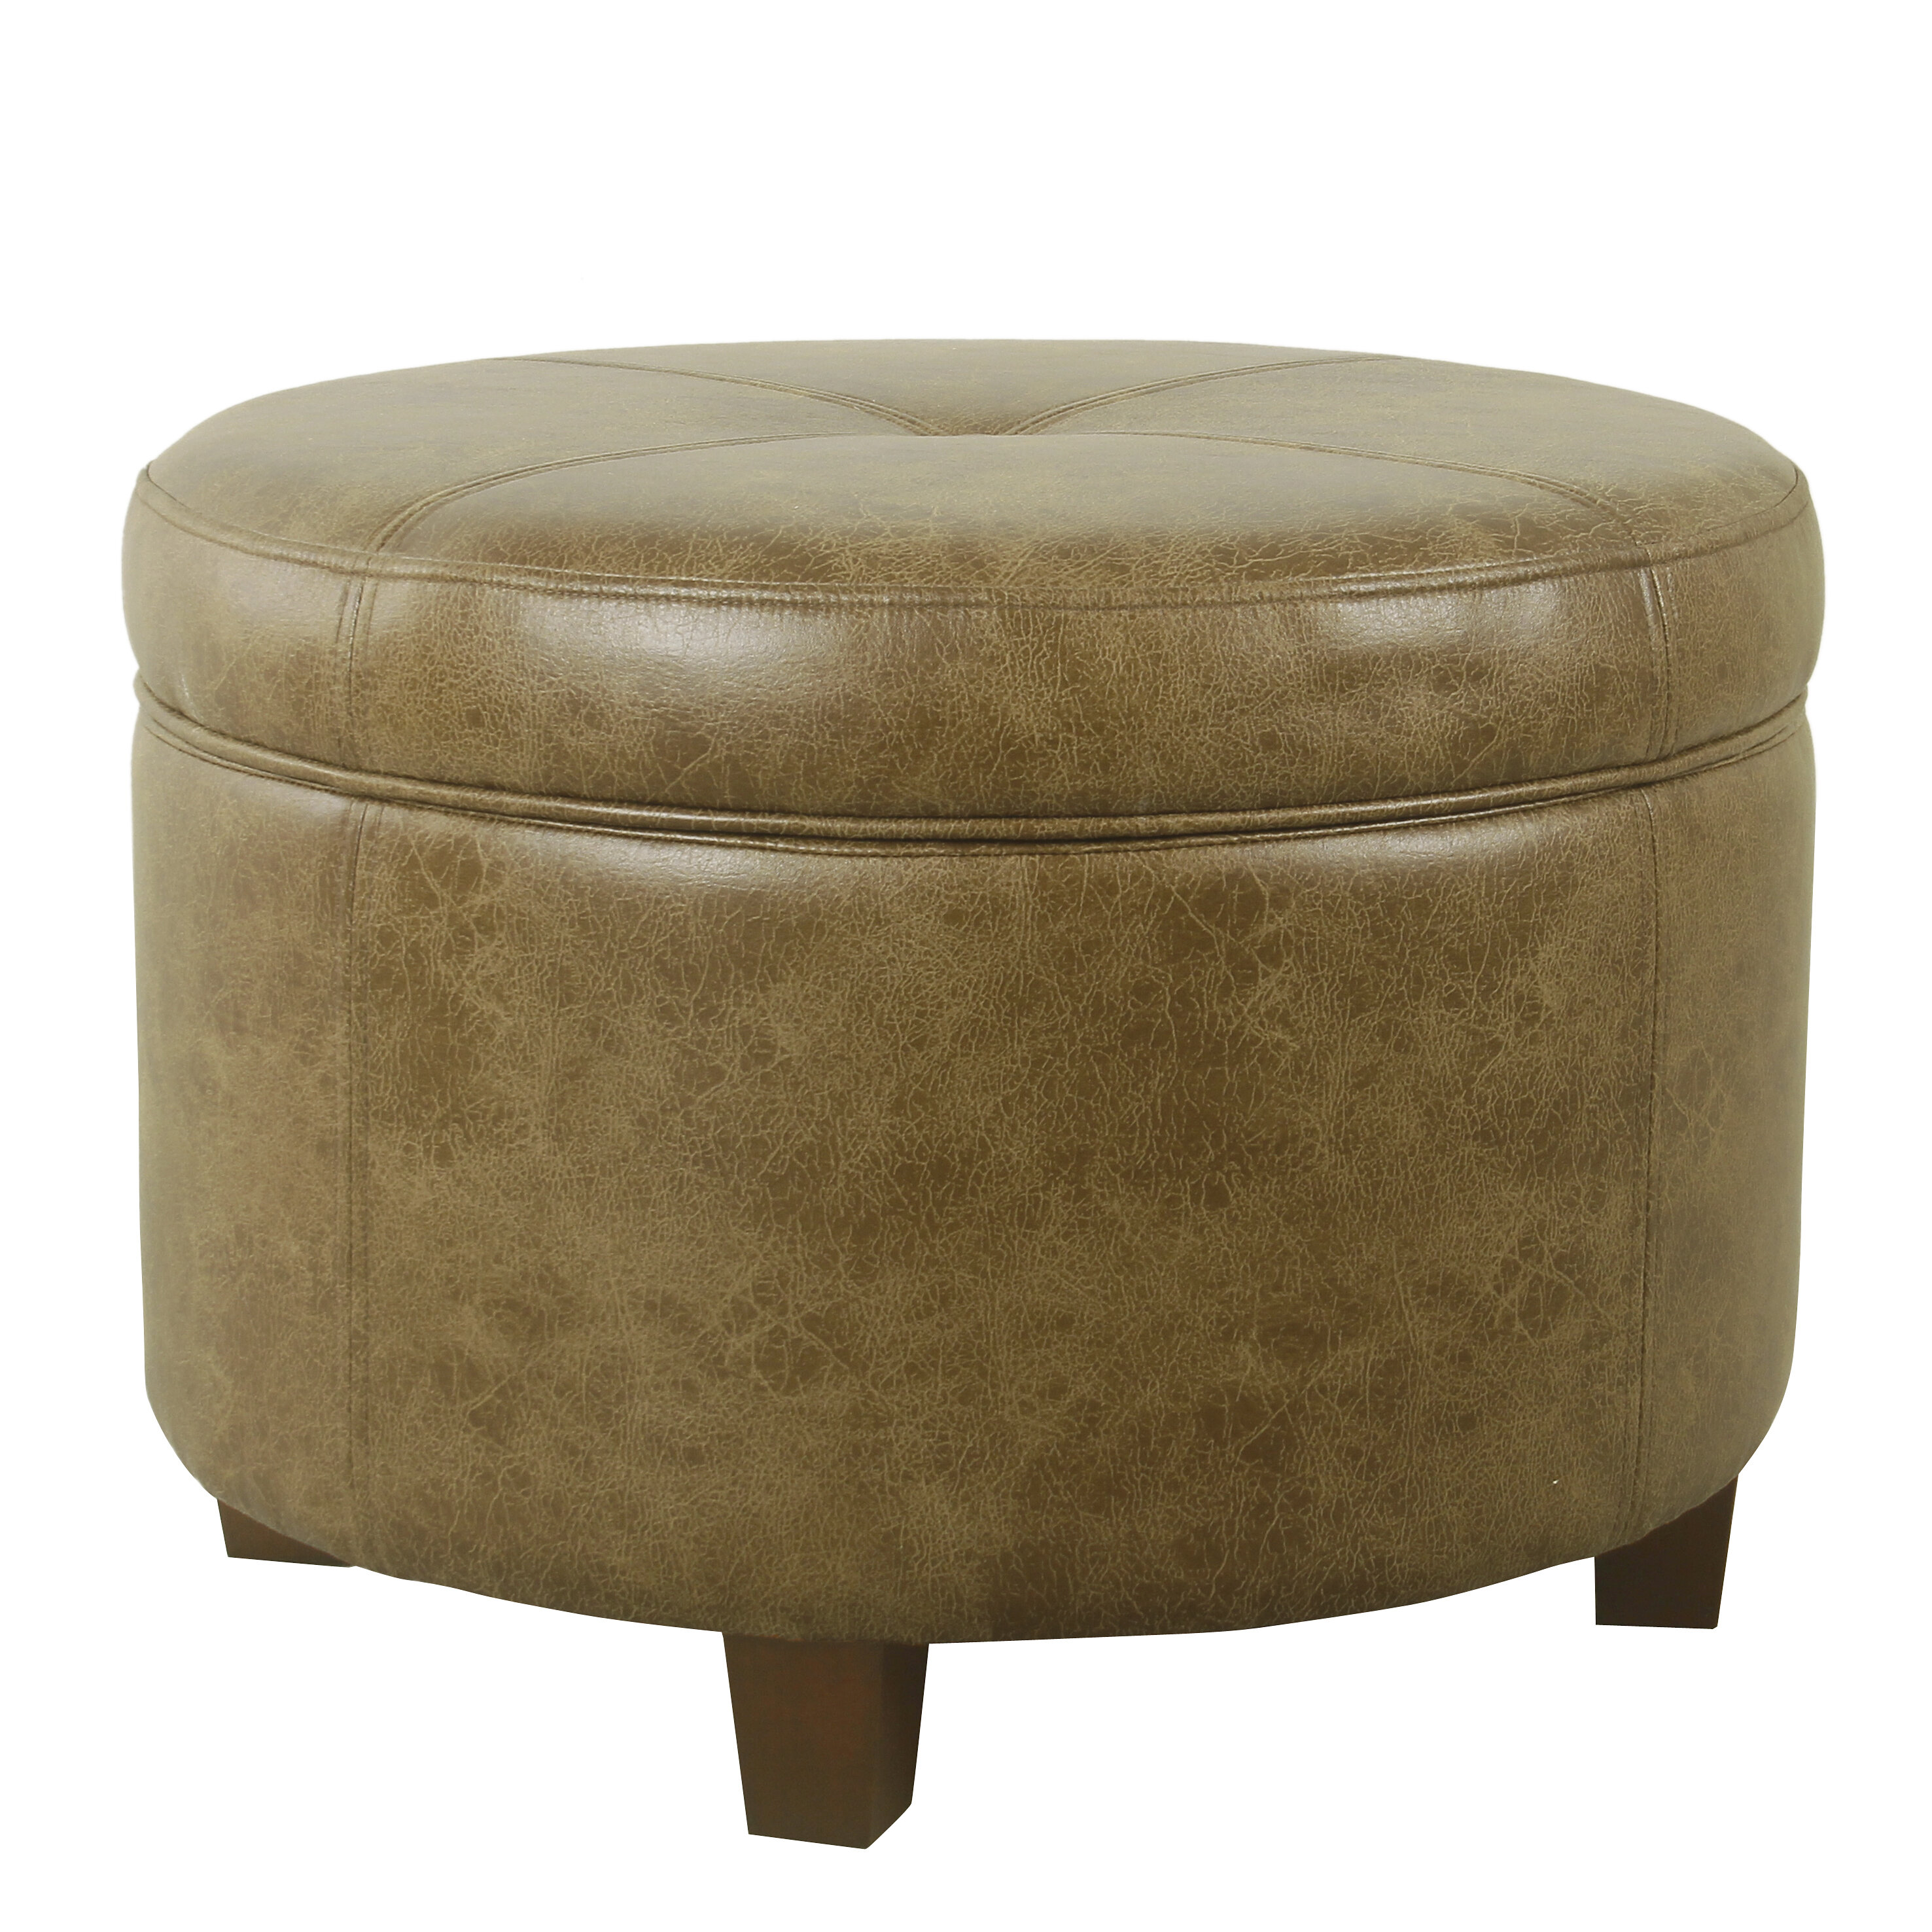 Groovy Channell Storage Ottoman Ncnpc Chair Design For Home Ncnpcorg